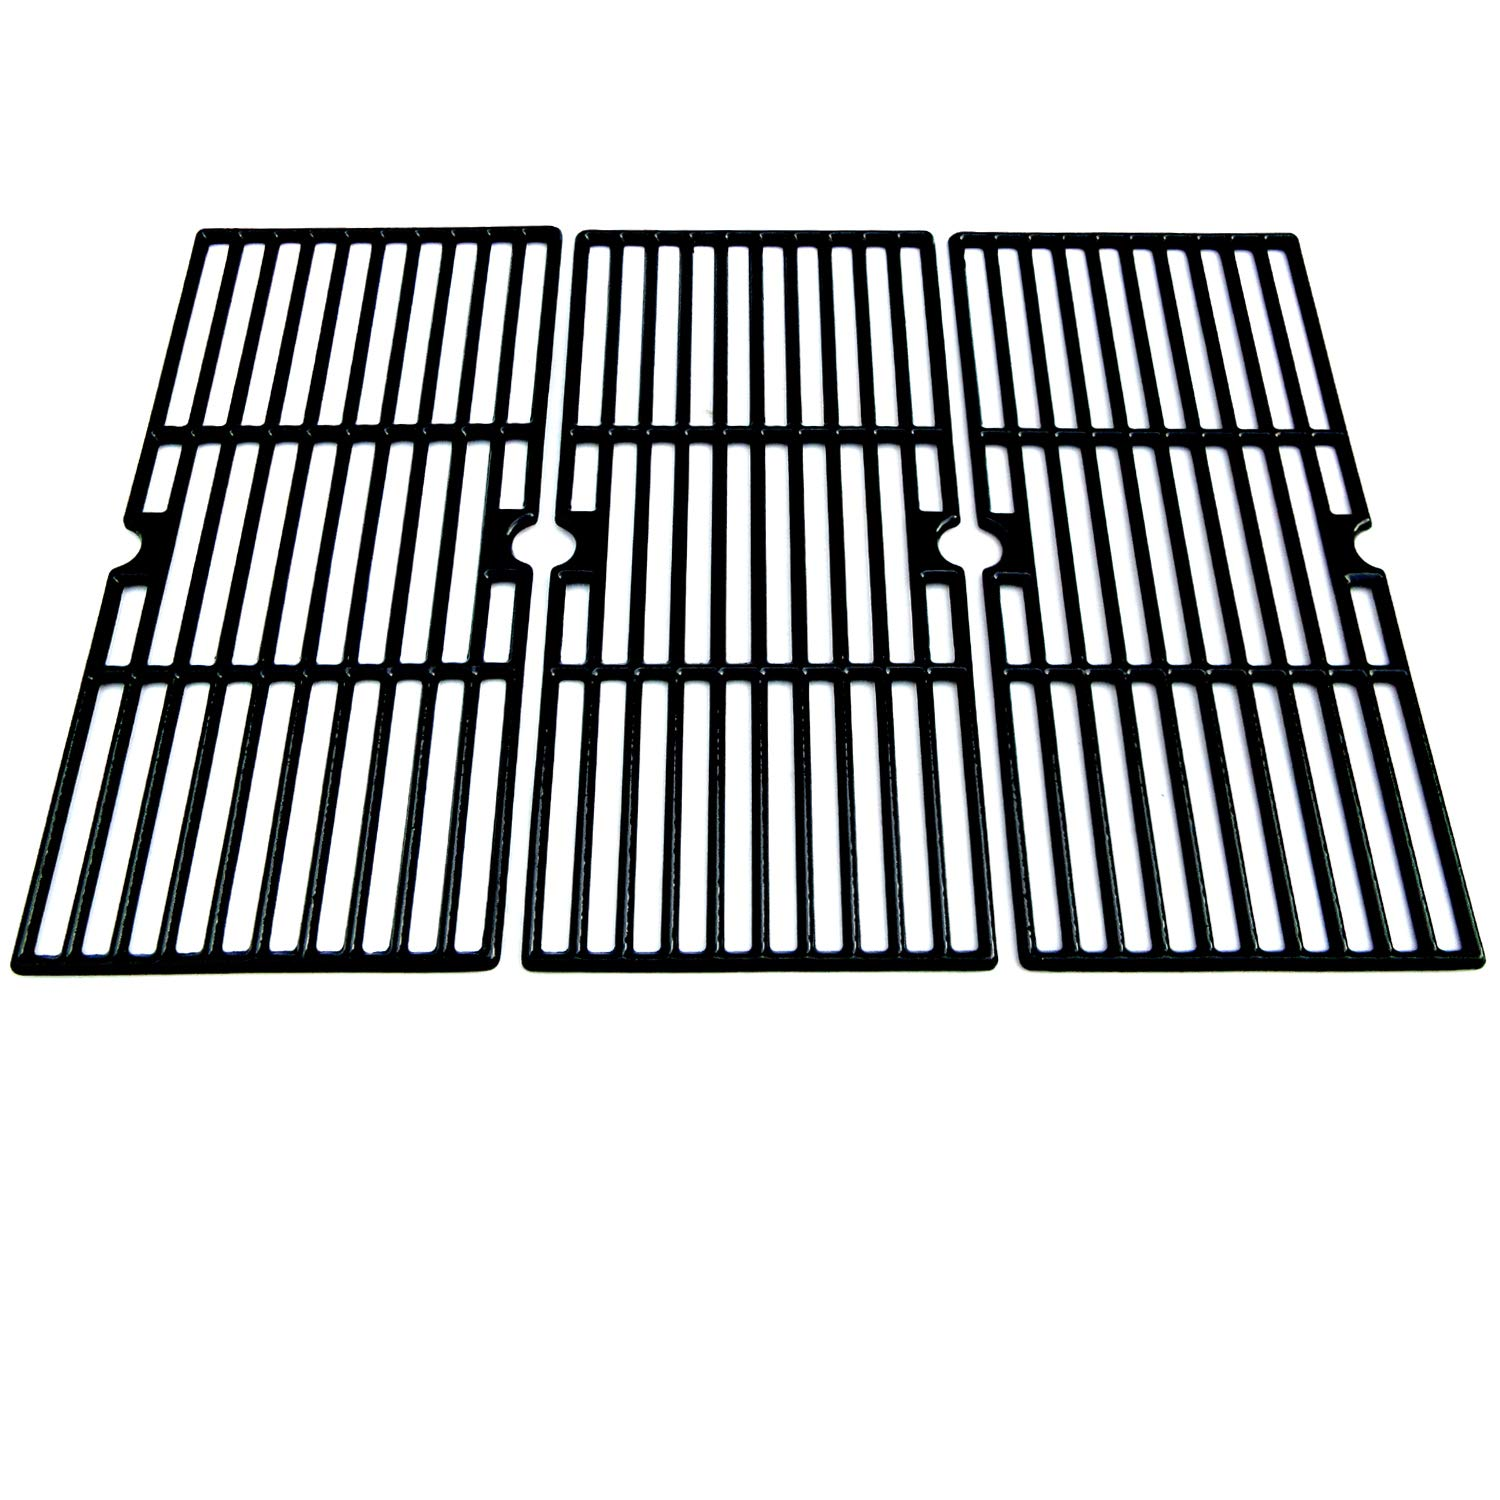 Direct store Parts DC115 Porcelain Cast Iron Cooking grid Replacement Charbroil, Kenmore, Centro,Broil King,Costco Kirkland,K Mart,Master Chef Gas Grill by Direct store